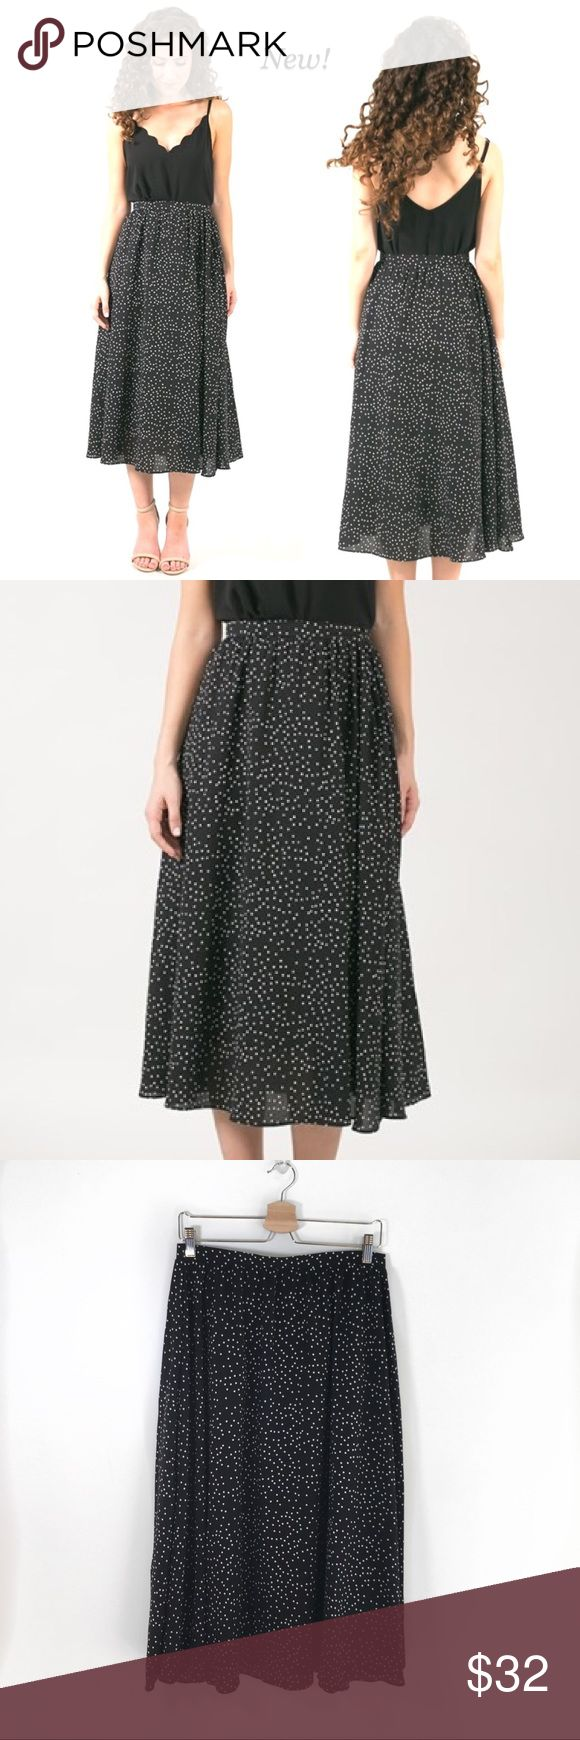 """Dot Print Midi Skirt - NEW with Tag, Boutique Fun classic midi skirt in black and white dot! Great year around wardrobe piece to pair with message tees, sweaters or denim buttonup for never ending outfit options. Runs SMALL- see waist measurement for true size. Side zip, fully lined. Tagged Medium fits like SMALL, 13.5"""" waist measured straight across so approx 27"""". Tagged XLarge FITS like Medium/LARGE, 14.5"""" waist straight across so approx 29"""" waist. Beautiful Boutique style NEW with tags…"""